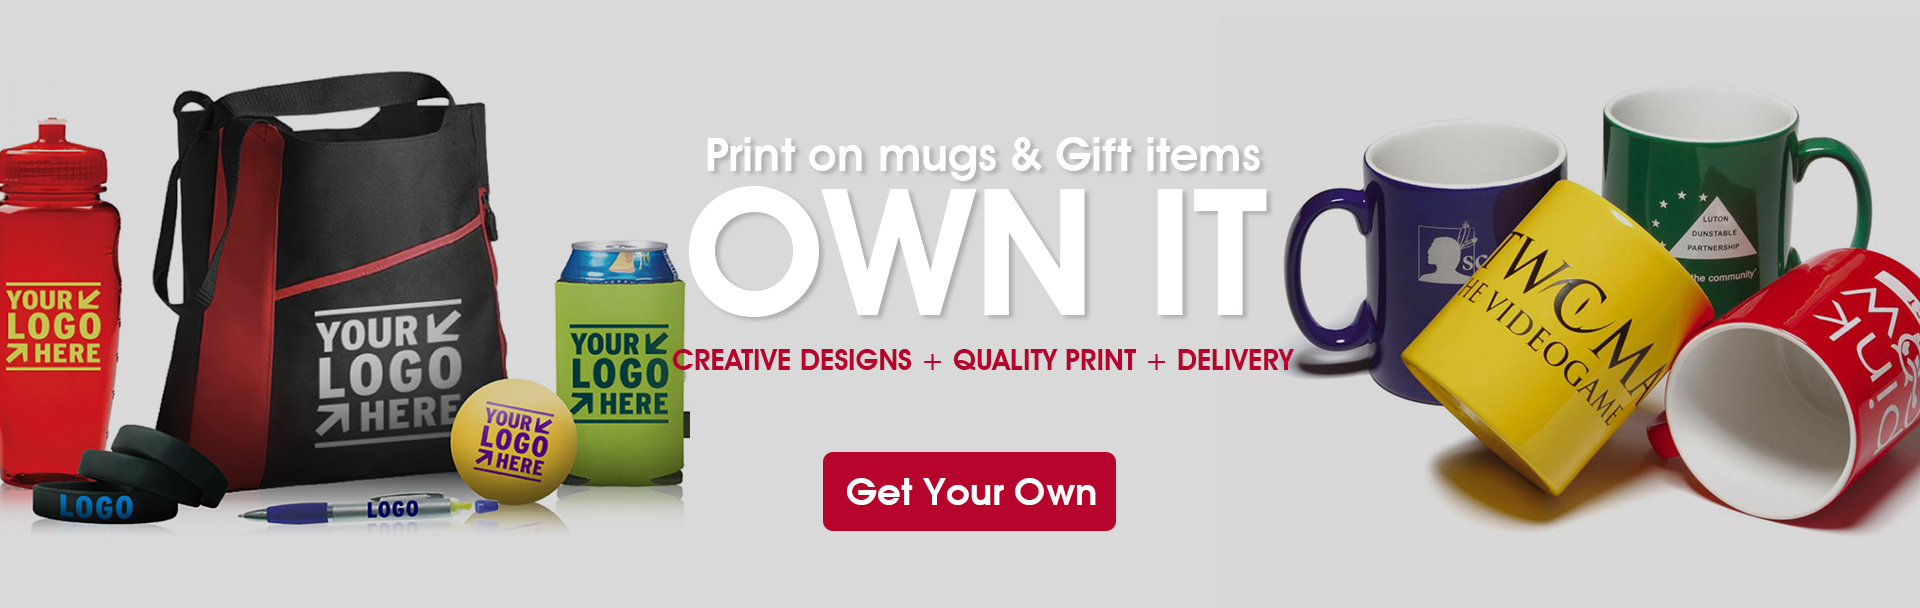 Corporate Gifts Printing in sector 9 noida